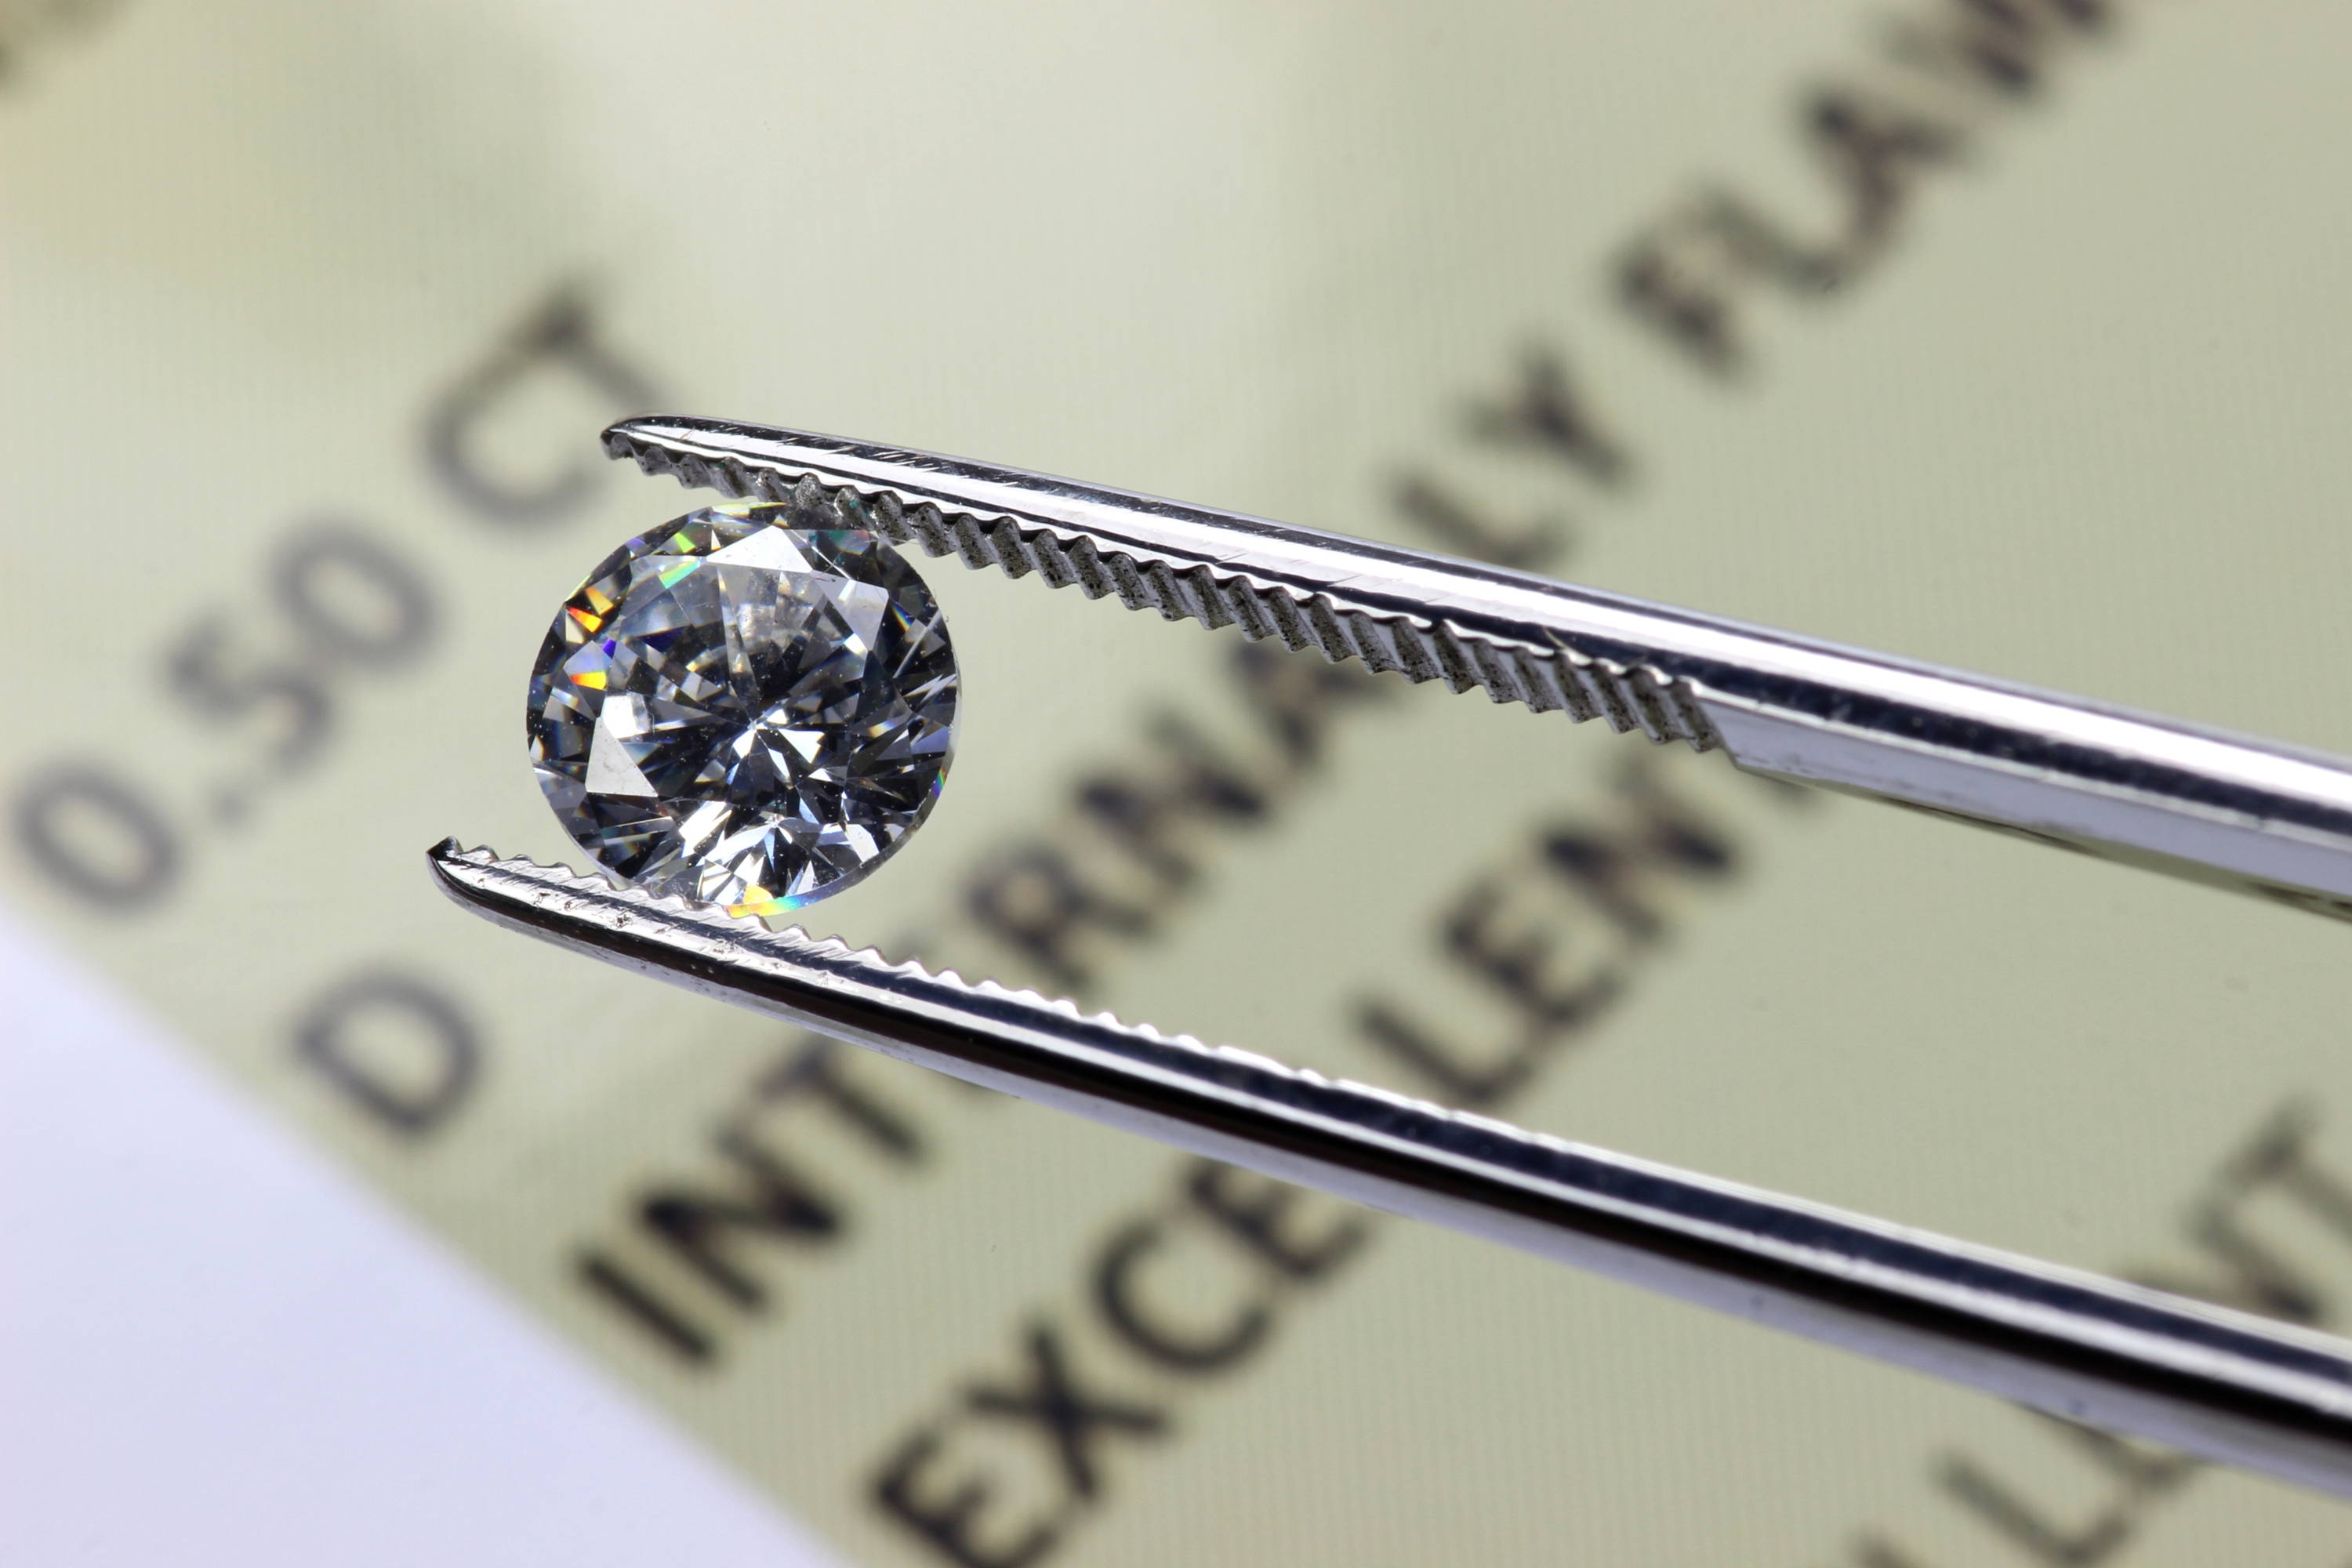 brilliance of a lab-grown diamond, held in tweezers